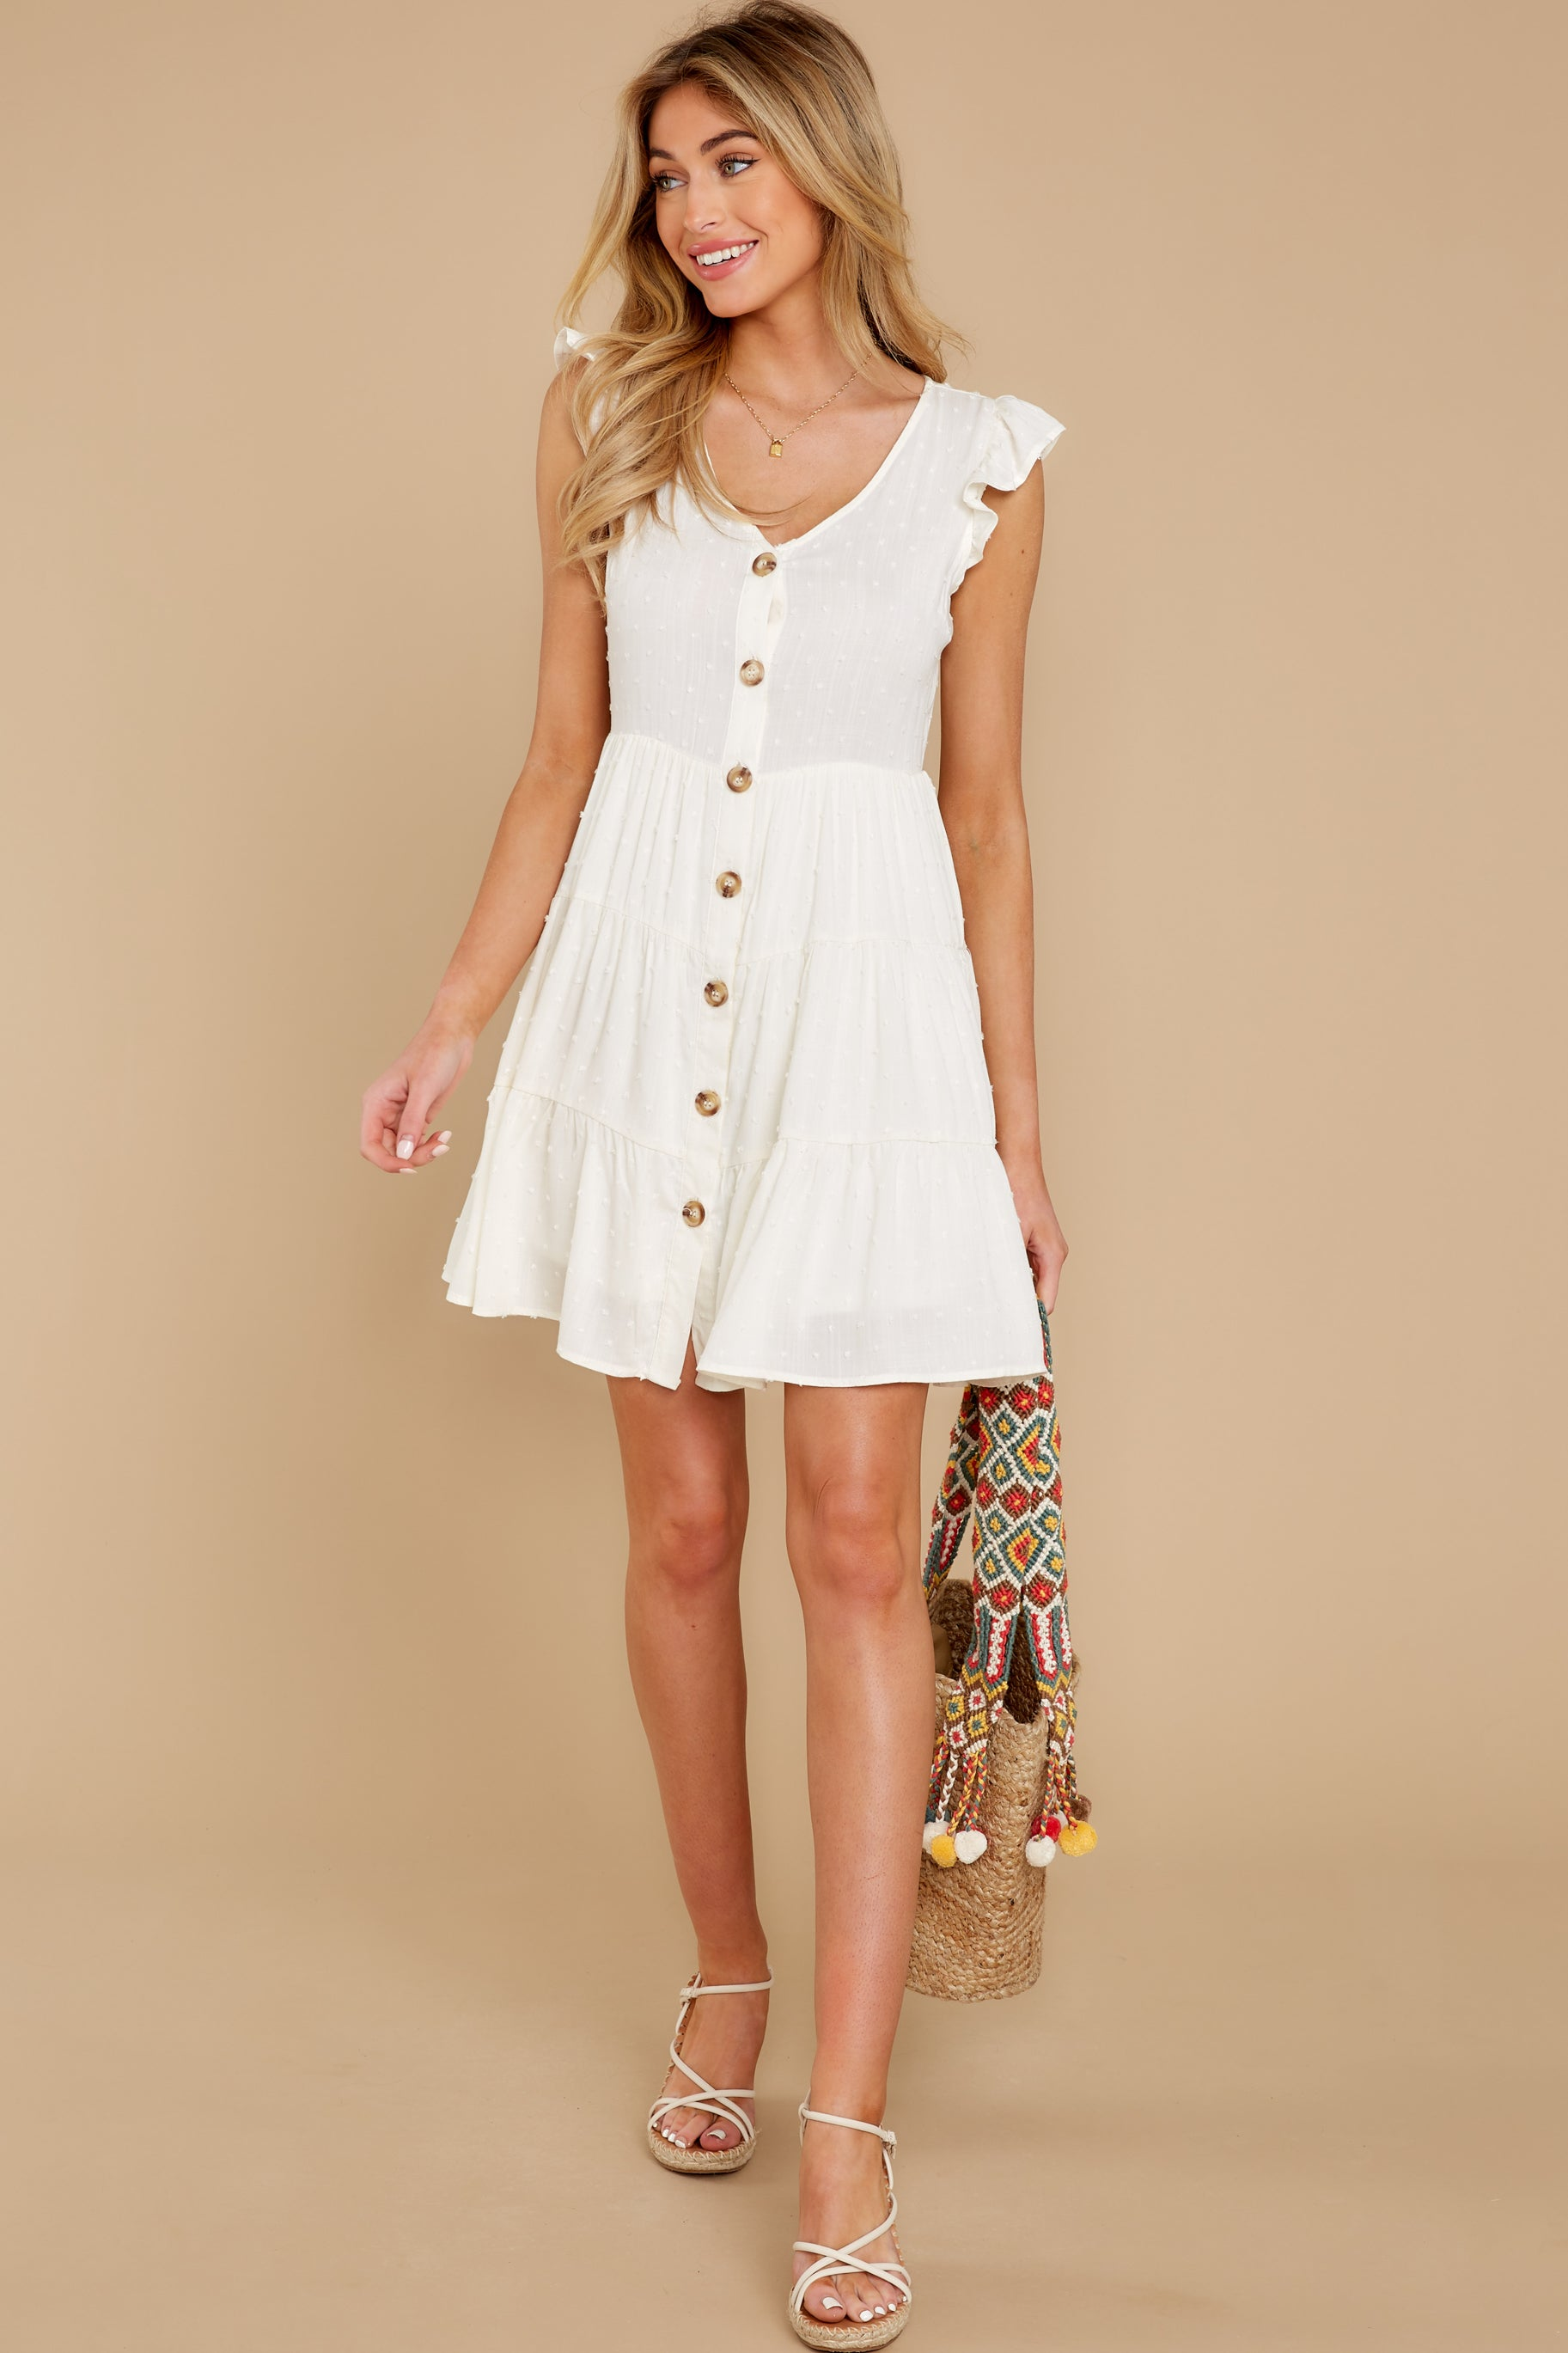 3 With Promises White Dress at reddress.com